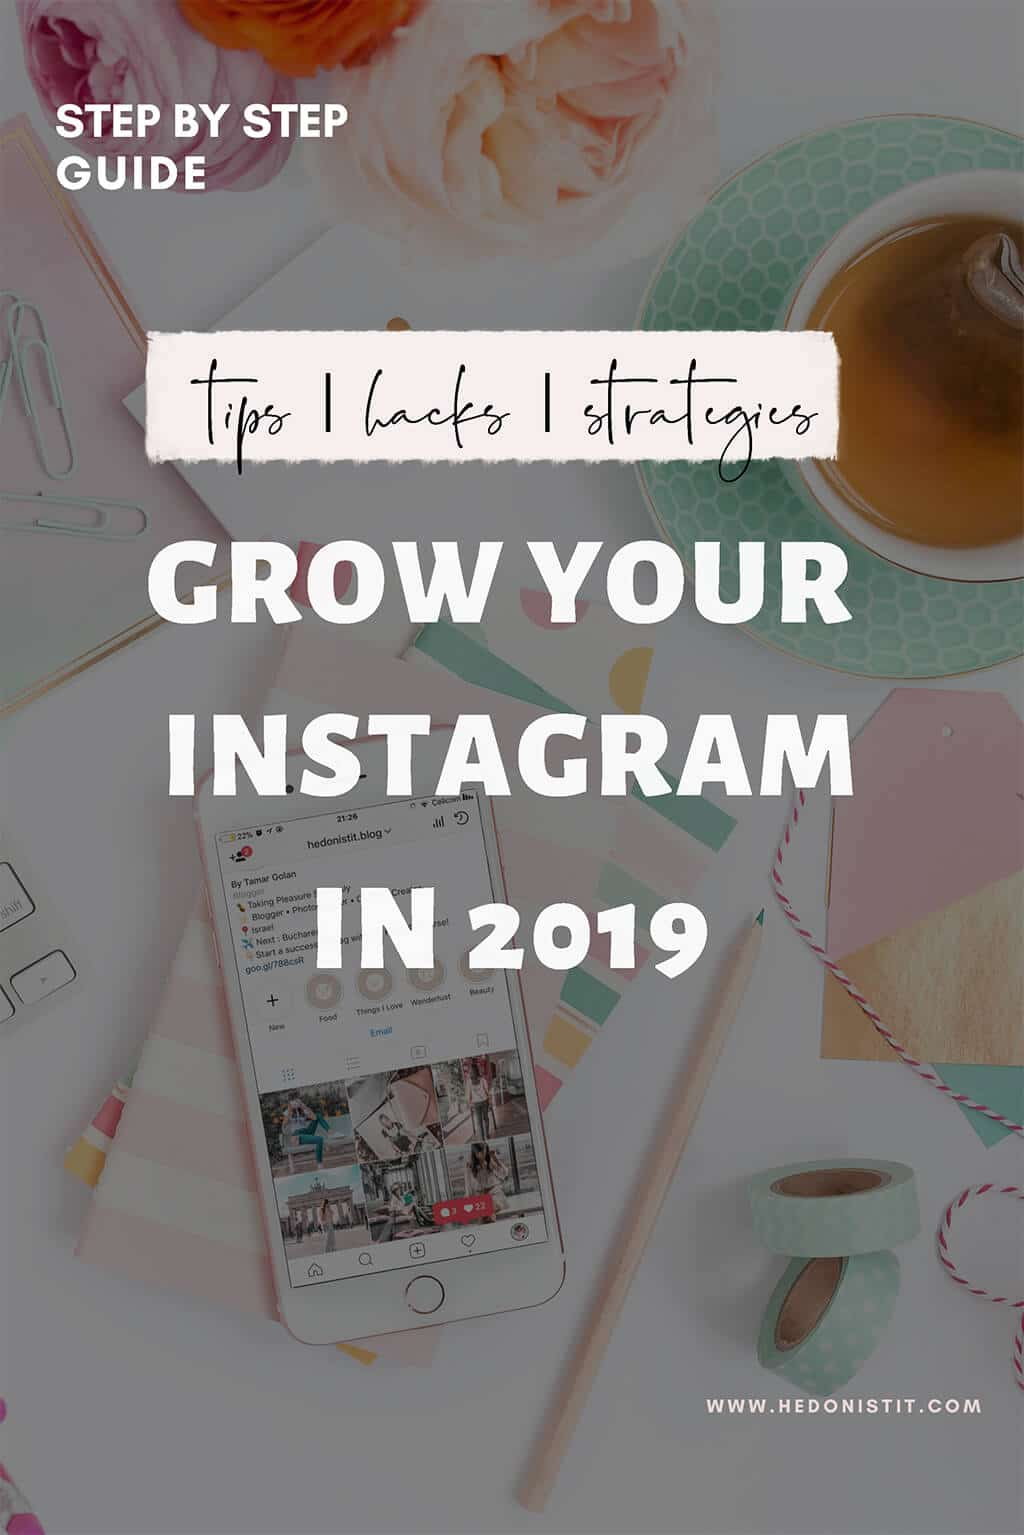 instagram tips, hacks and strategies in 2019